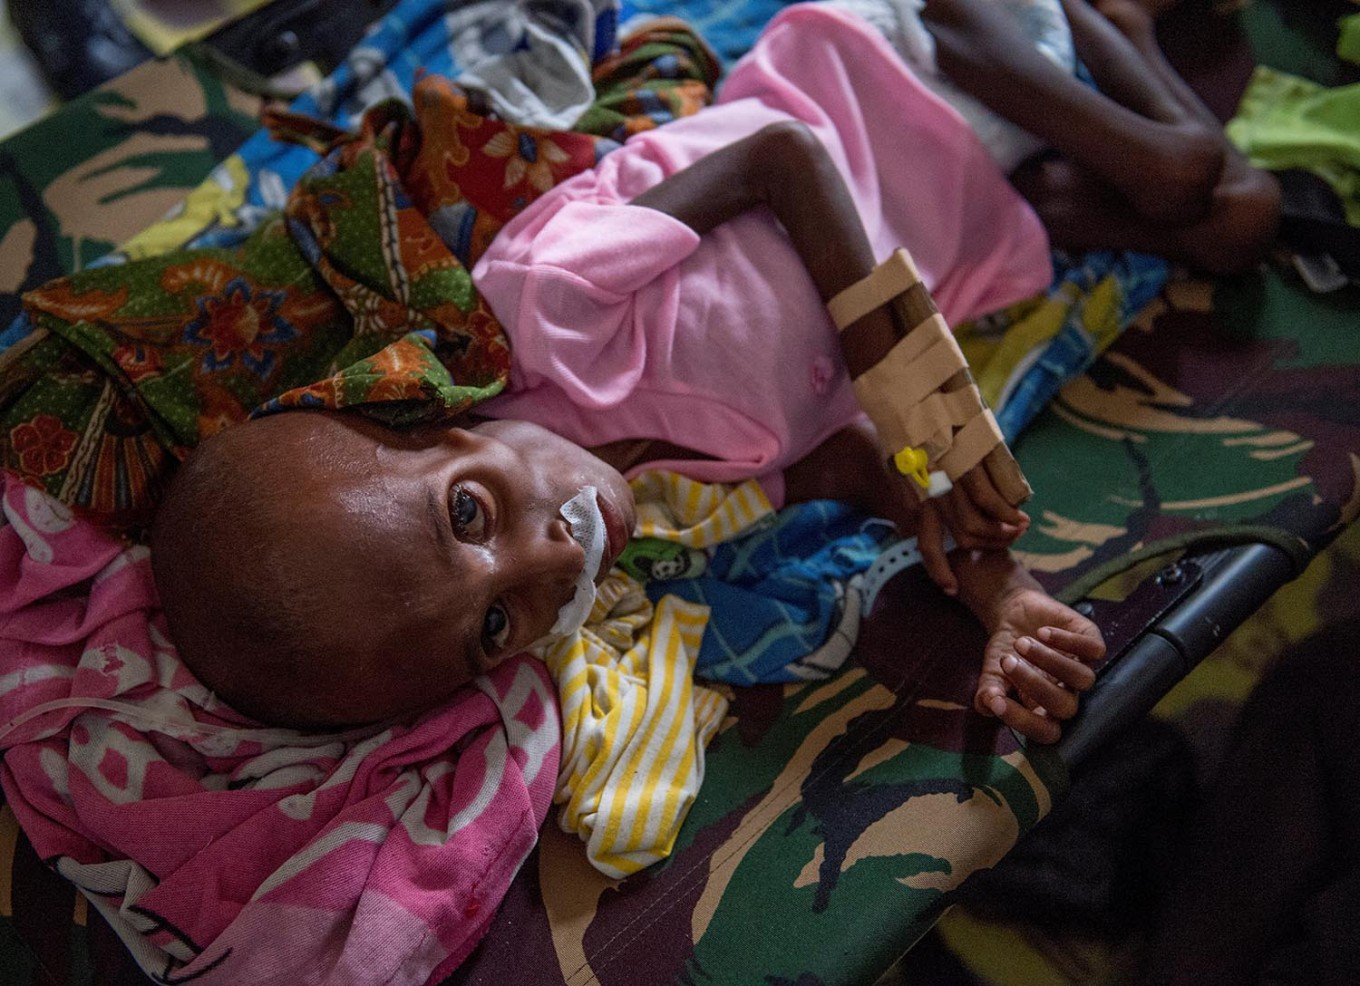 """A Papuan child suffering from malnutrition lies in a hospital bed for treatment in Agats, the capital of Asmat district in Indonesia's easternmost Papua province, on January 26, 2018. Some 800 children have been sickened in the area with as many as 100 others, mostly toddlers, feared to have died in what a military official called an """"extraordinary"""" outbreak that was first made public this month. AFP/ Bay Ismoyo"""